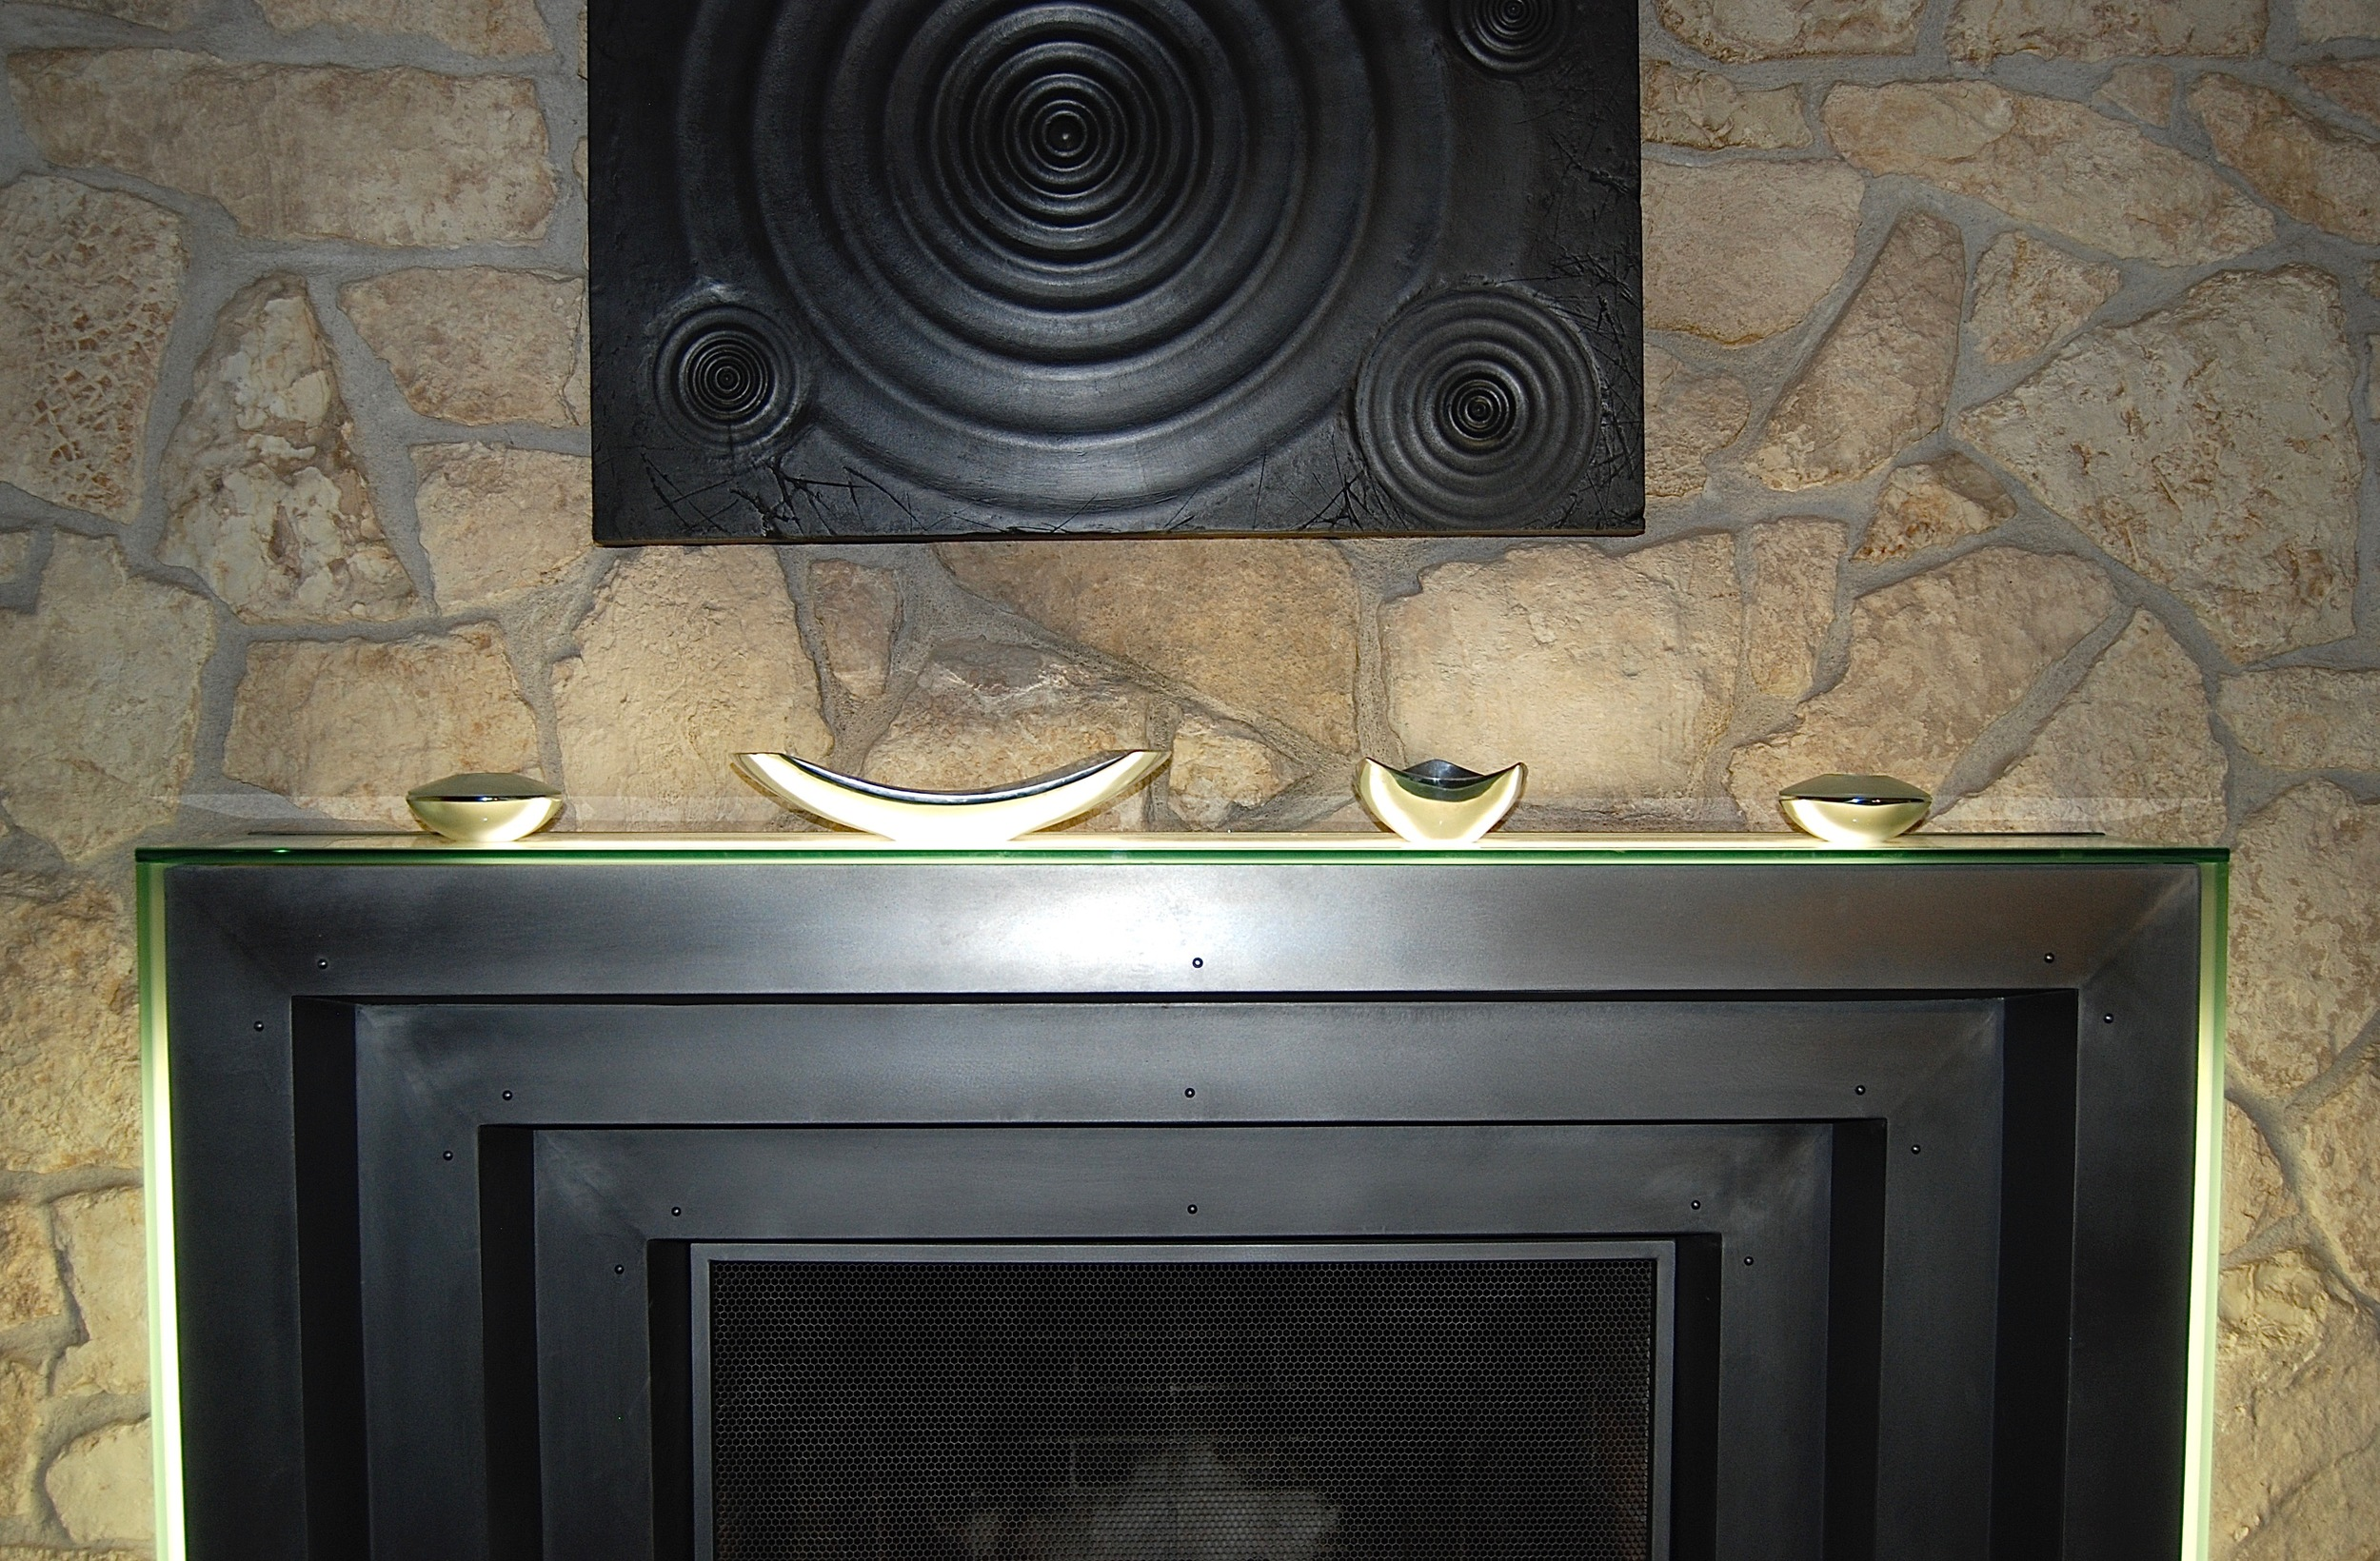 Coffin & King Custom Furniture/ Interiors - Brushed Steel Lighted Fireplace Mantel (detail)